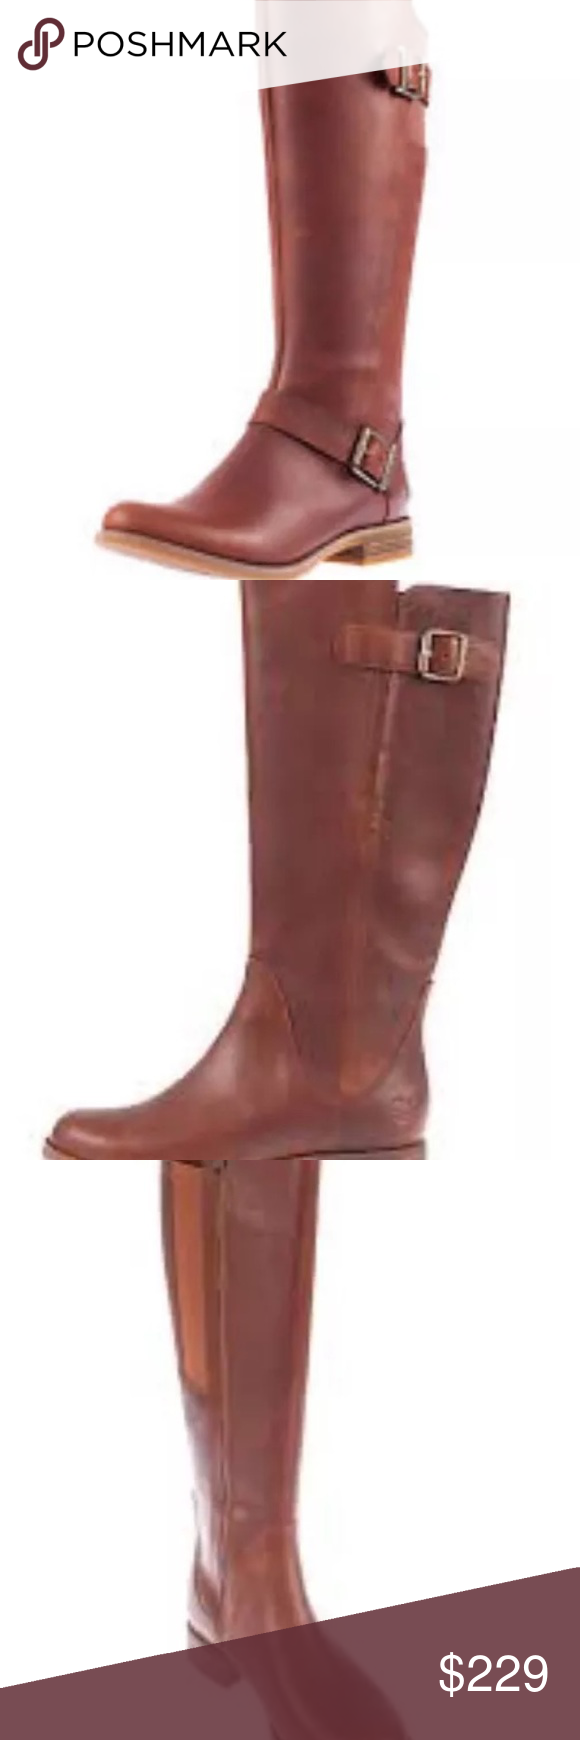 ab03b8ce6fa TIMBERLAND WOMEN S BANFIELD TALL WATERPROOF BOOT For a looser fit